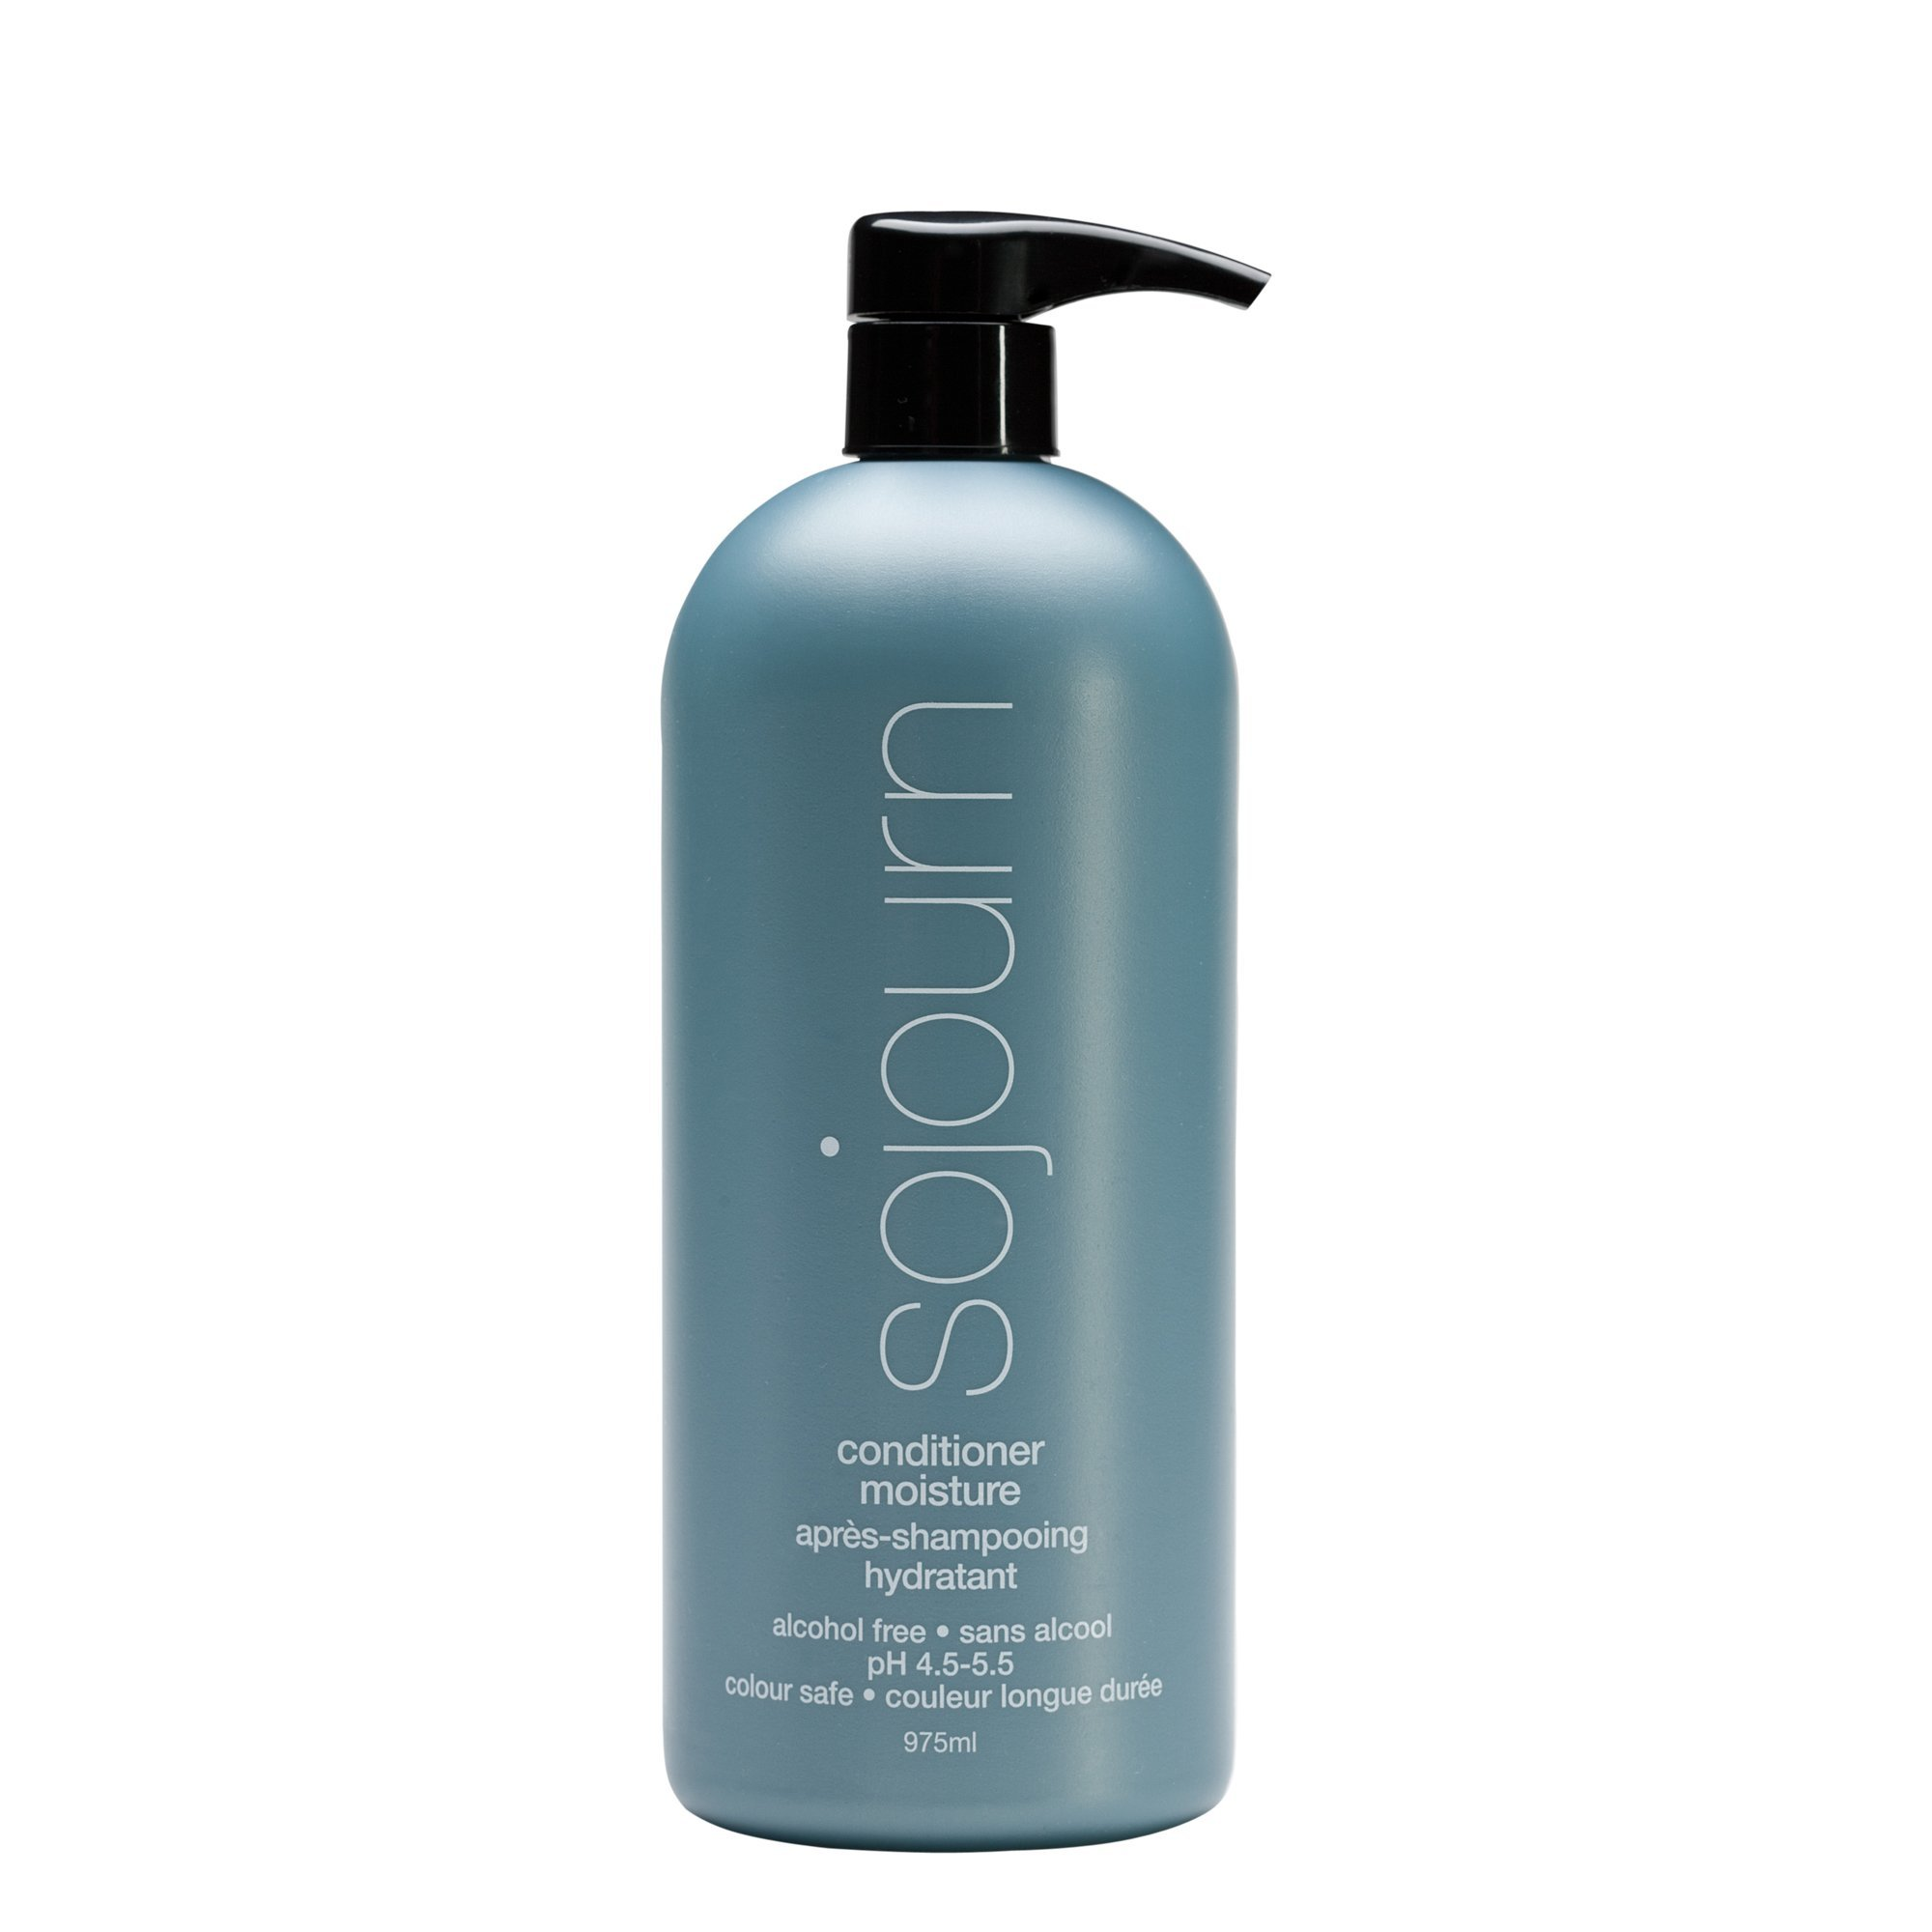 Sojourn Moisture Conditioner Hydrating Effect For Normal, Dry, Curly Or Thick Hair, (975ml or 33 fl oz) Color Safe, Professional Salon Recommended